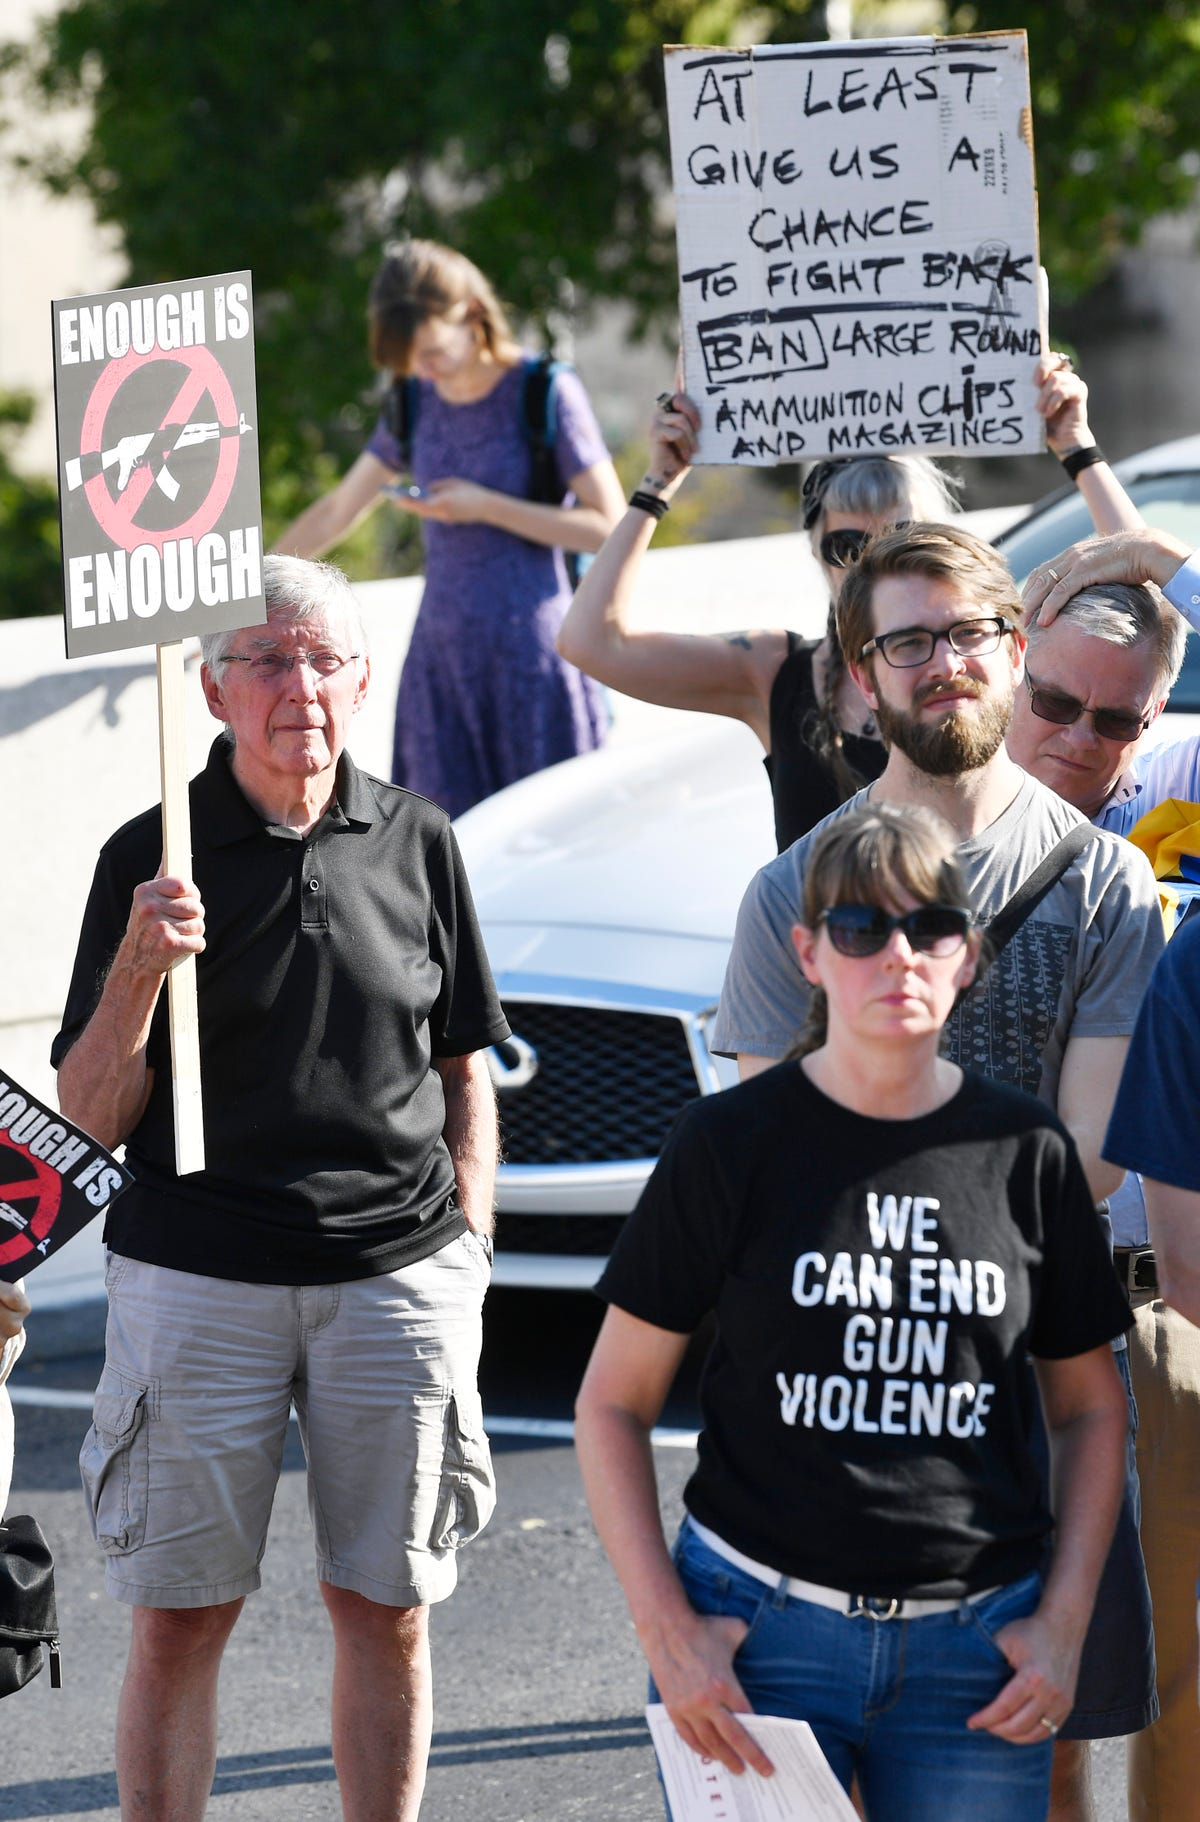 Mass shooting vigil: Nashville activists call on lawmakers to act on